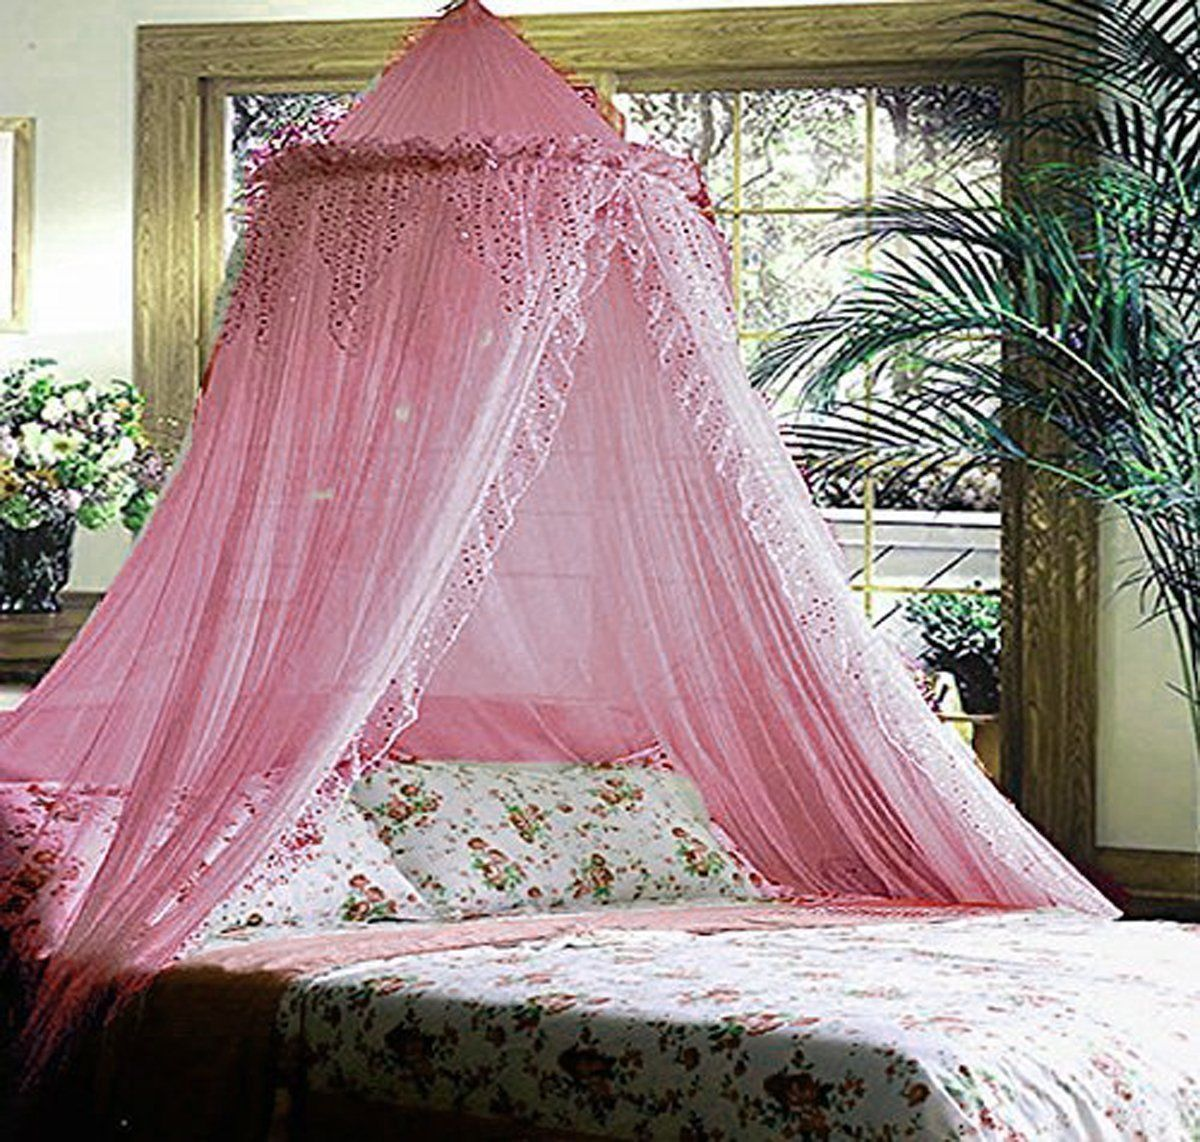 Details About Sparkle Bling Bed Canopy Mosquito Net Pink Queen Free Shipping From Usa Princess Canopy Bed